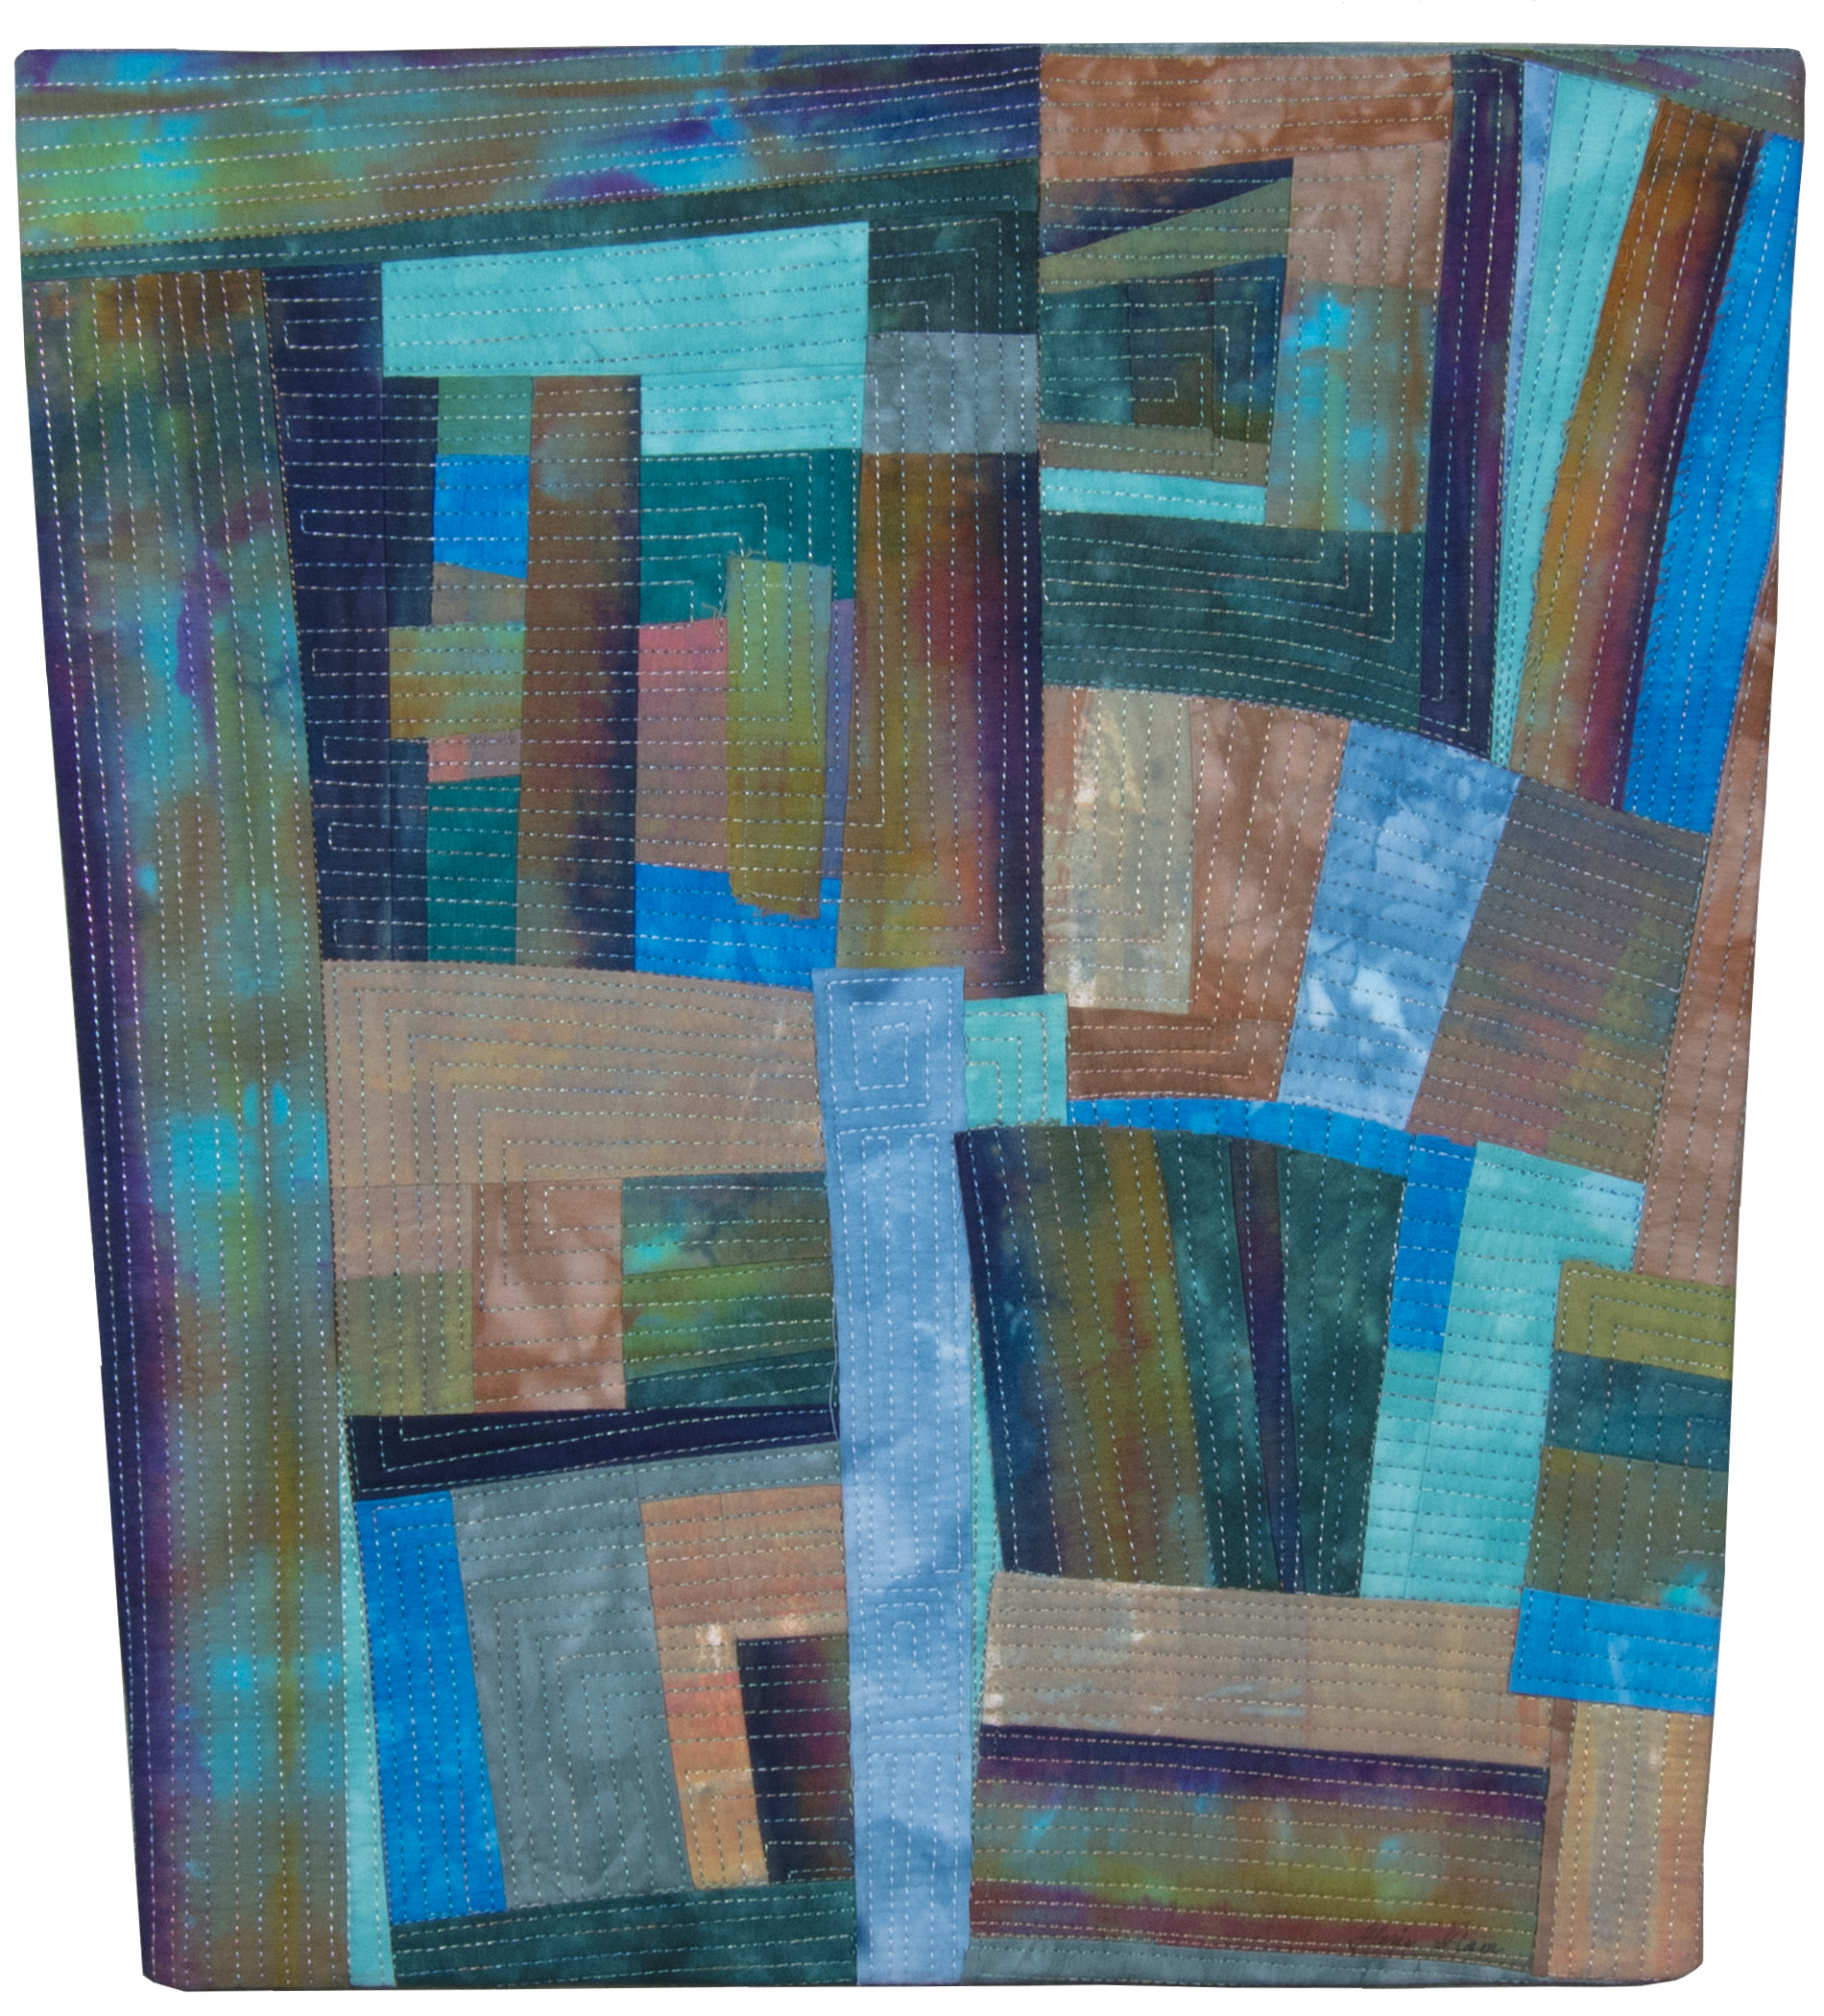 stitched fabric collage